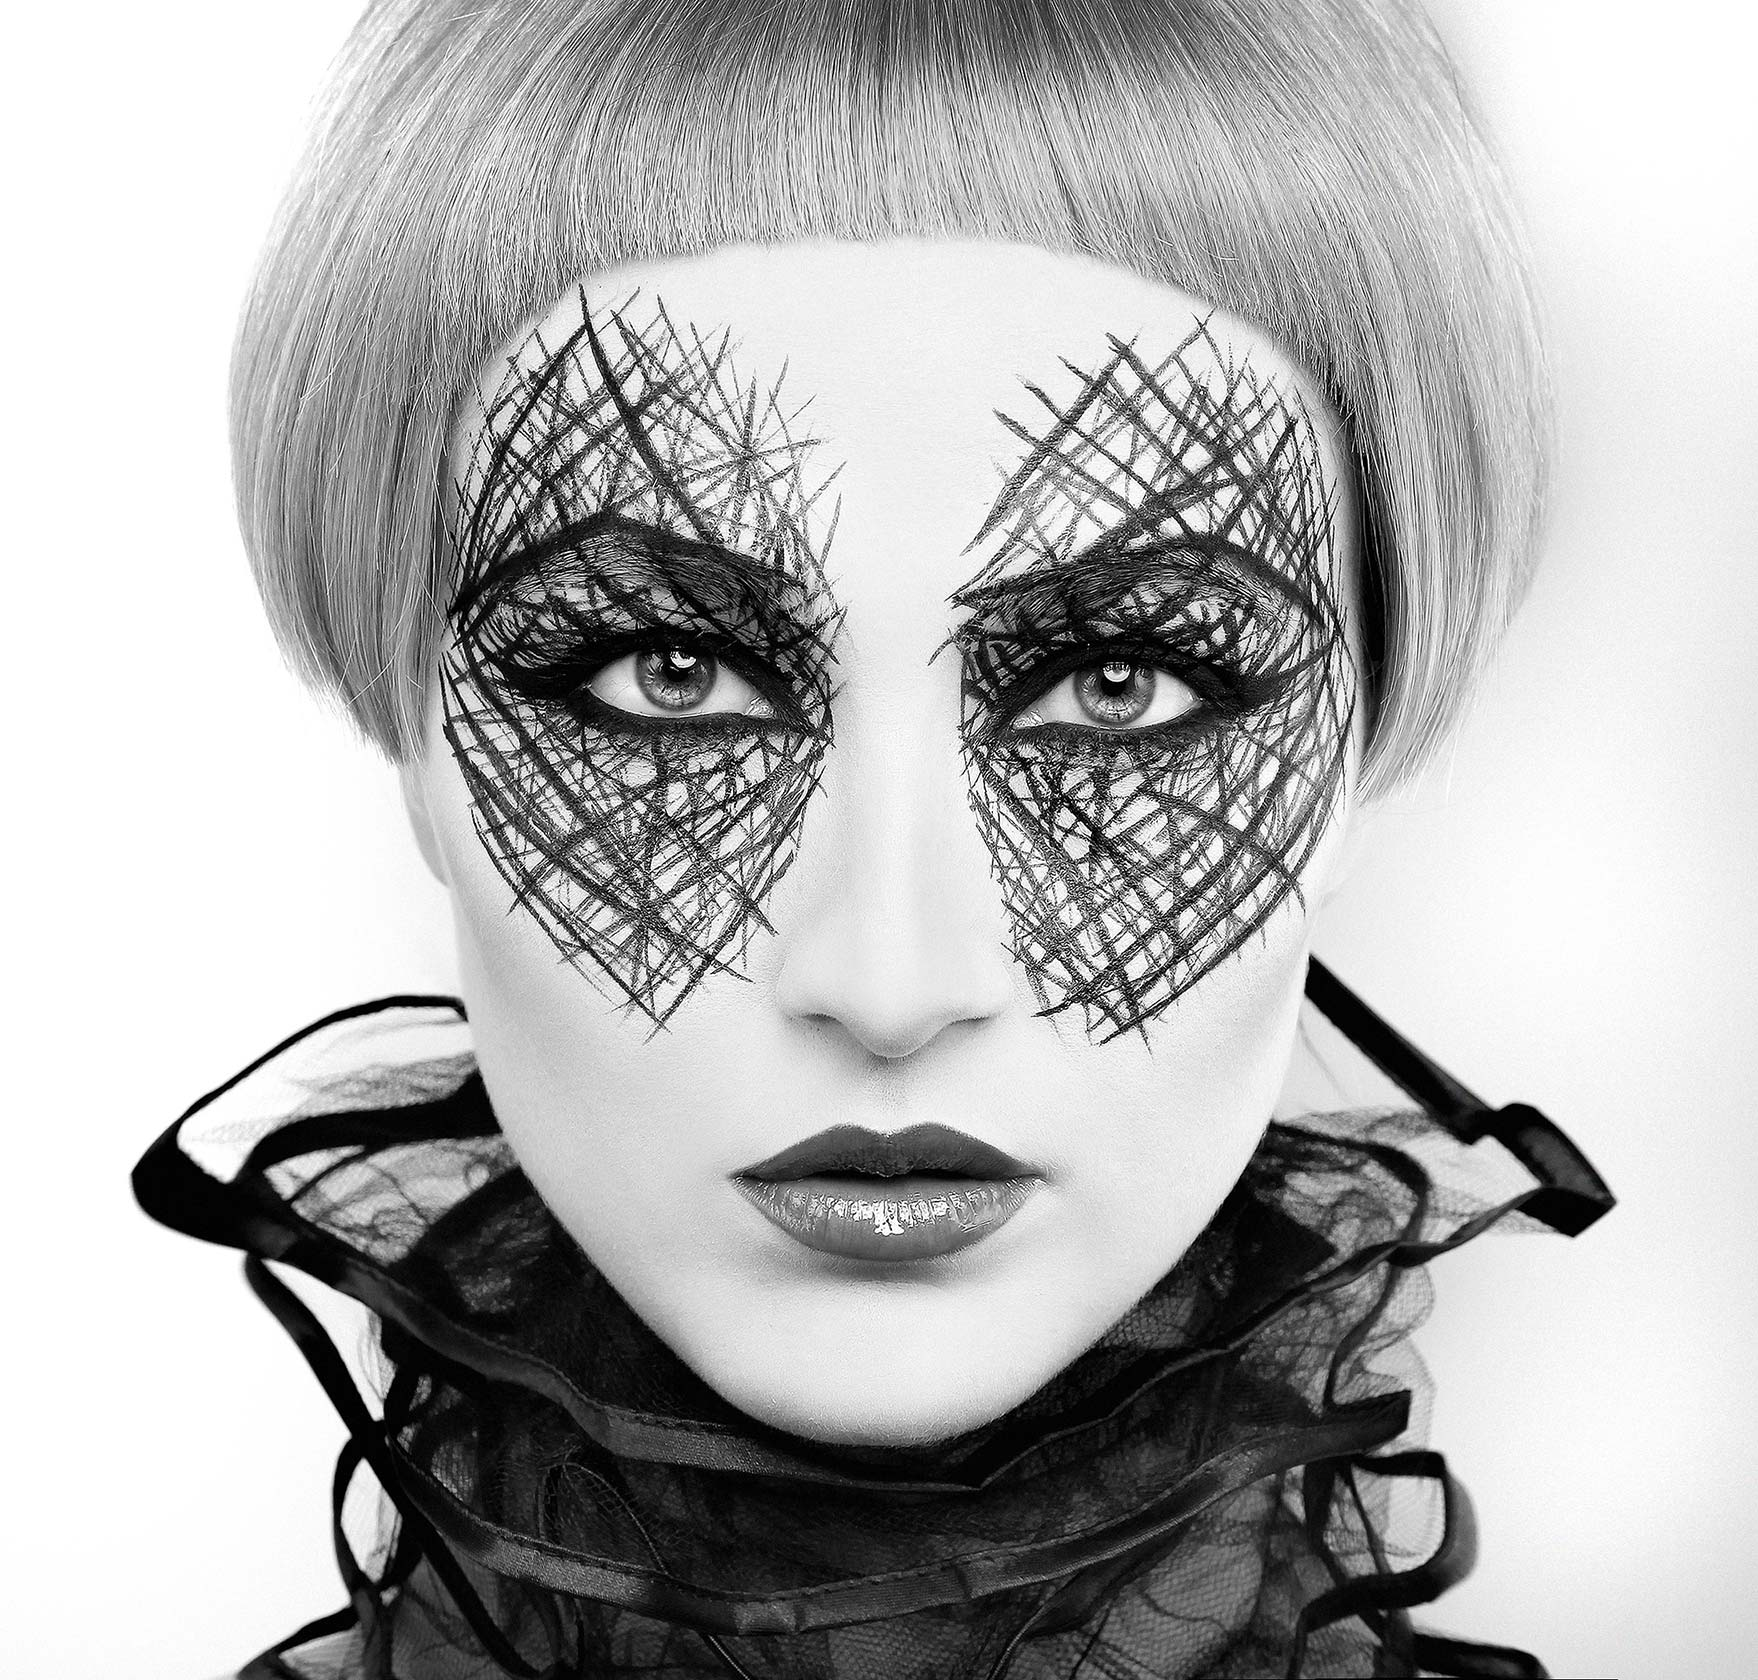 london-ont-photographers-scribble-makeup-eyeliner-bw-graphic-catseye-fashion-beauty-photographers-london-toronto-ontario-hair-shoot-contessa-salon-entreous-florencia-taylor-julie-vriesinga